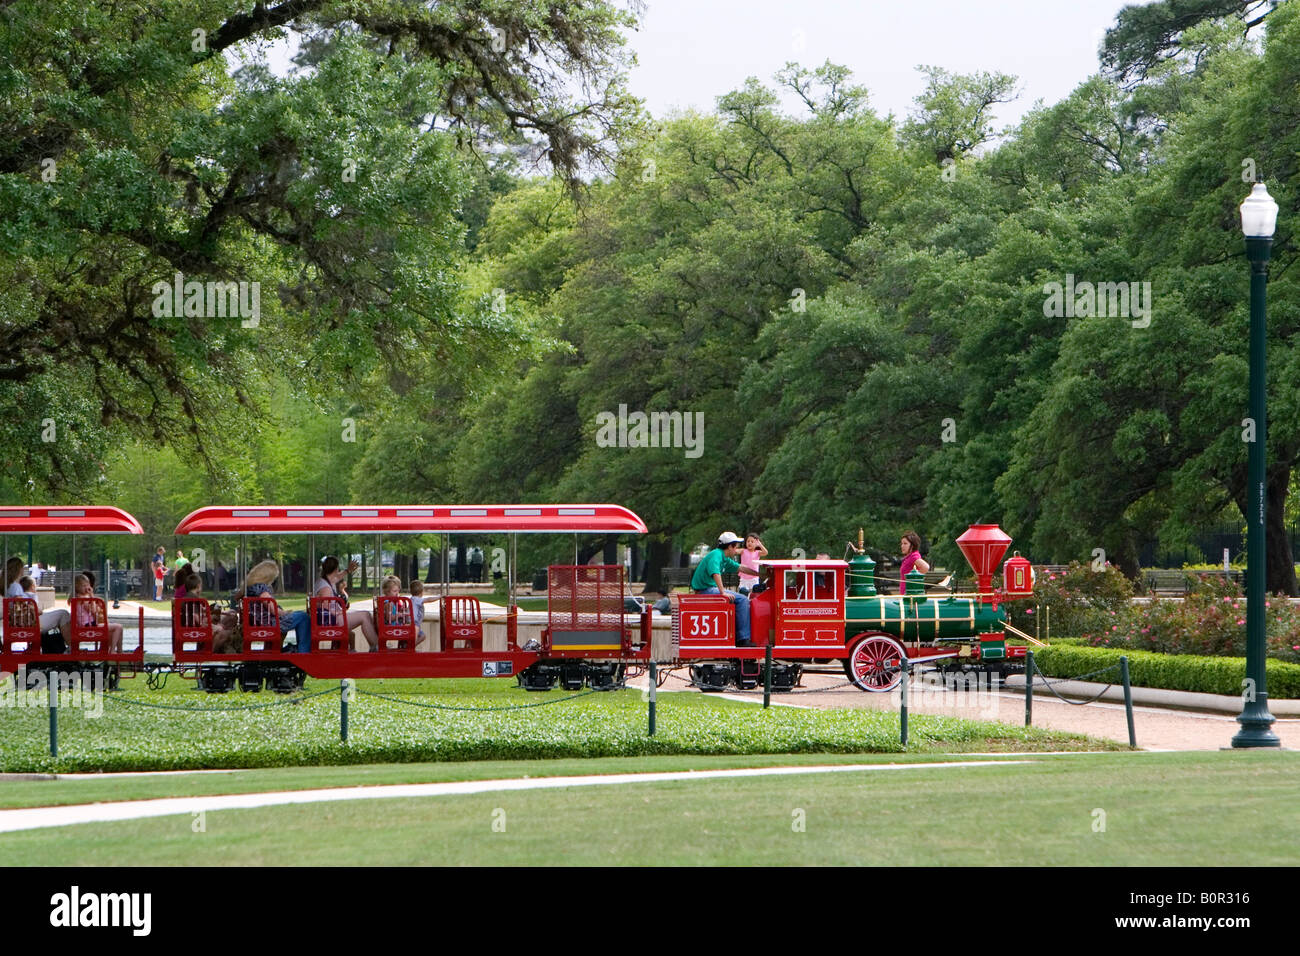 Small train gives visitors a tour of Hermann Park in Houston Texas - Stock Image